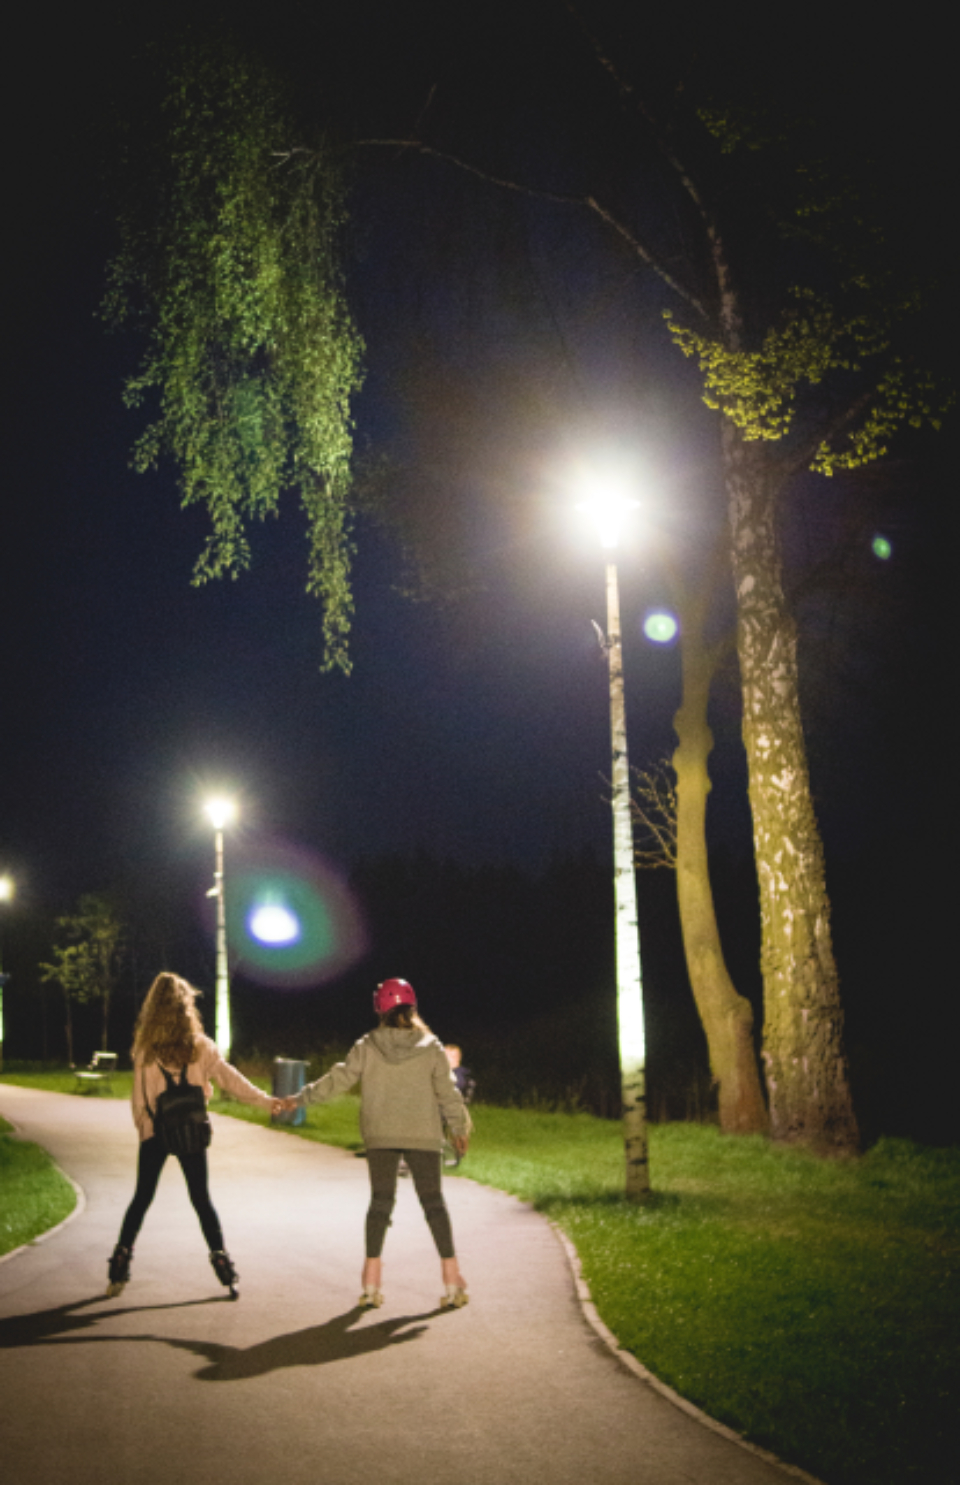 woman rollerblading night couple holding hands street lights palm tree sport fun